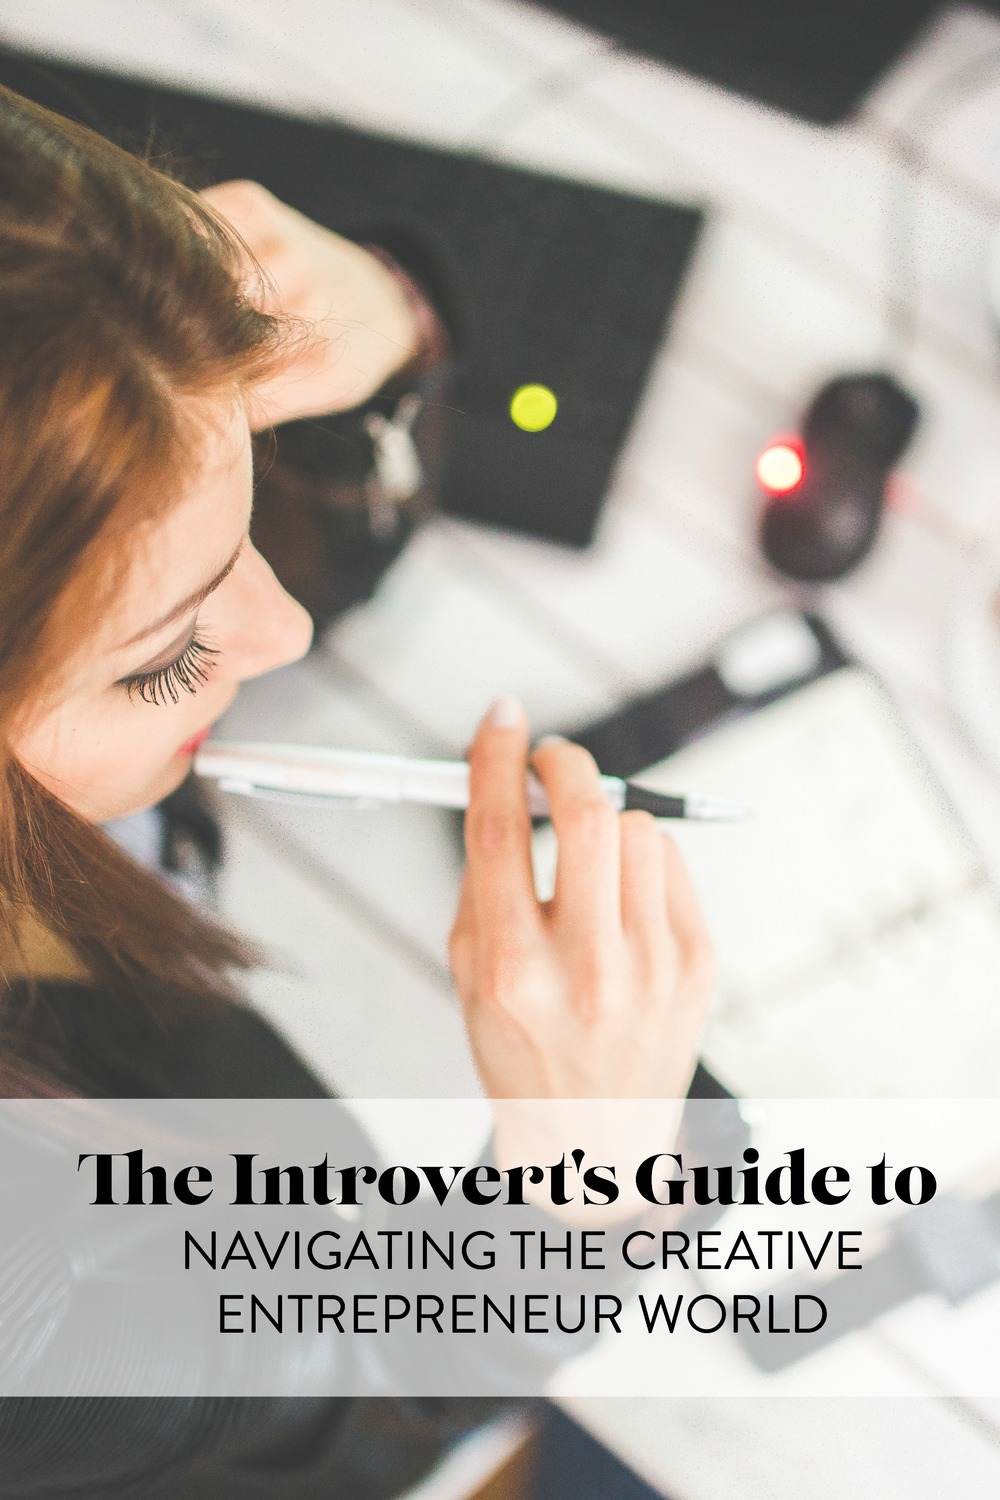 Introvert's Guide to Navigating the Creative Entrepreneur World